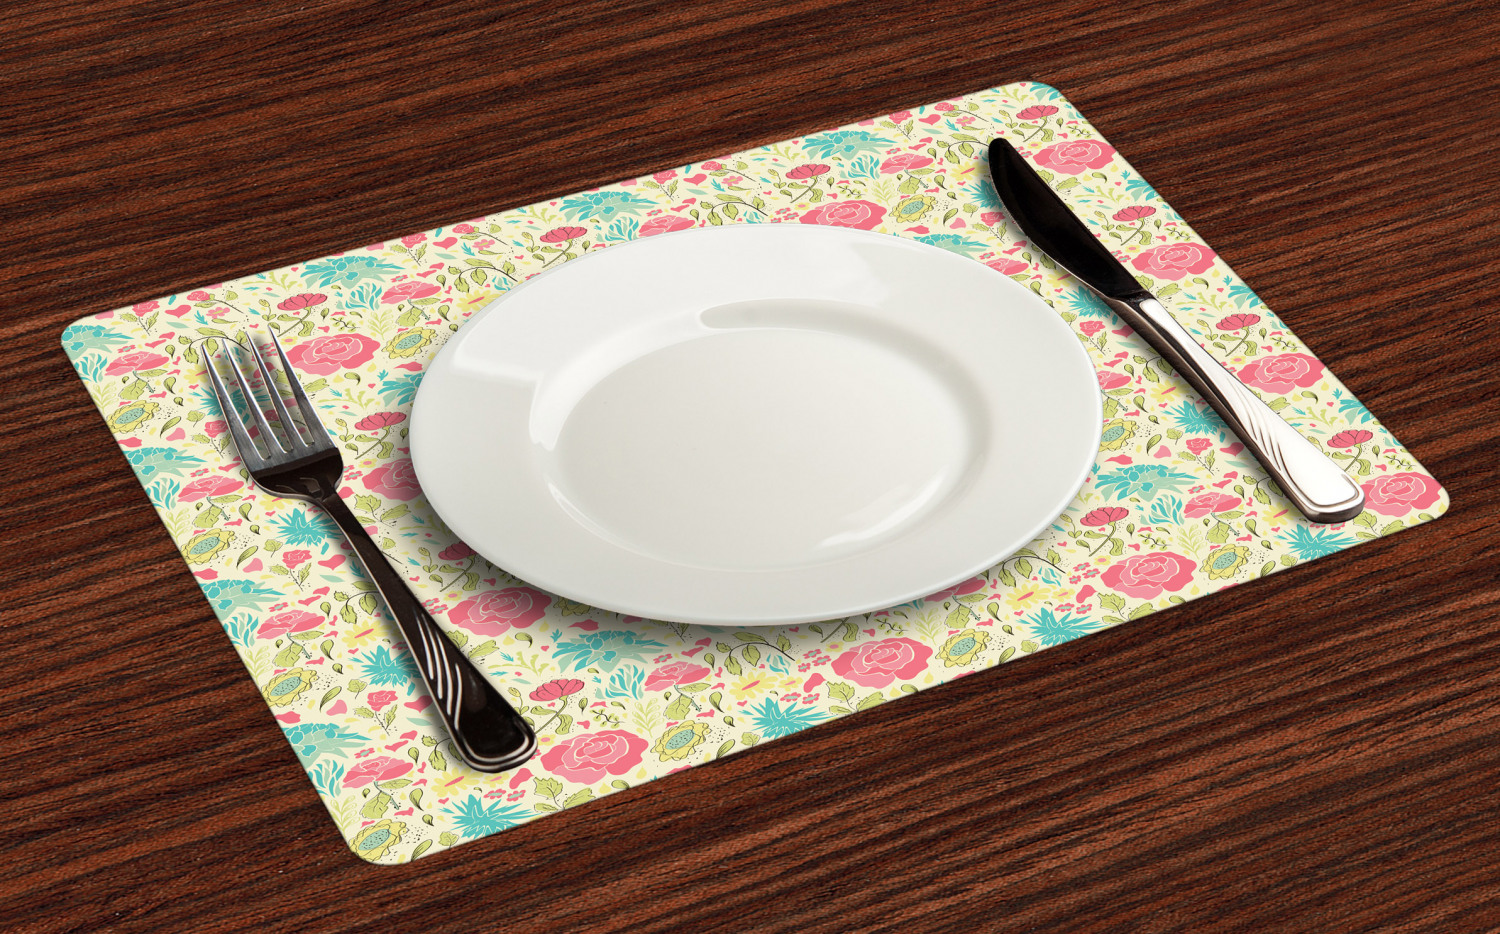 Ambesonne-Flower-Pattern-Placemat-Set-of-4-Fabric-Place-Mats-for-Table-Decor thumbnail 41